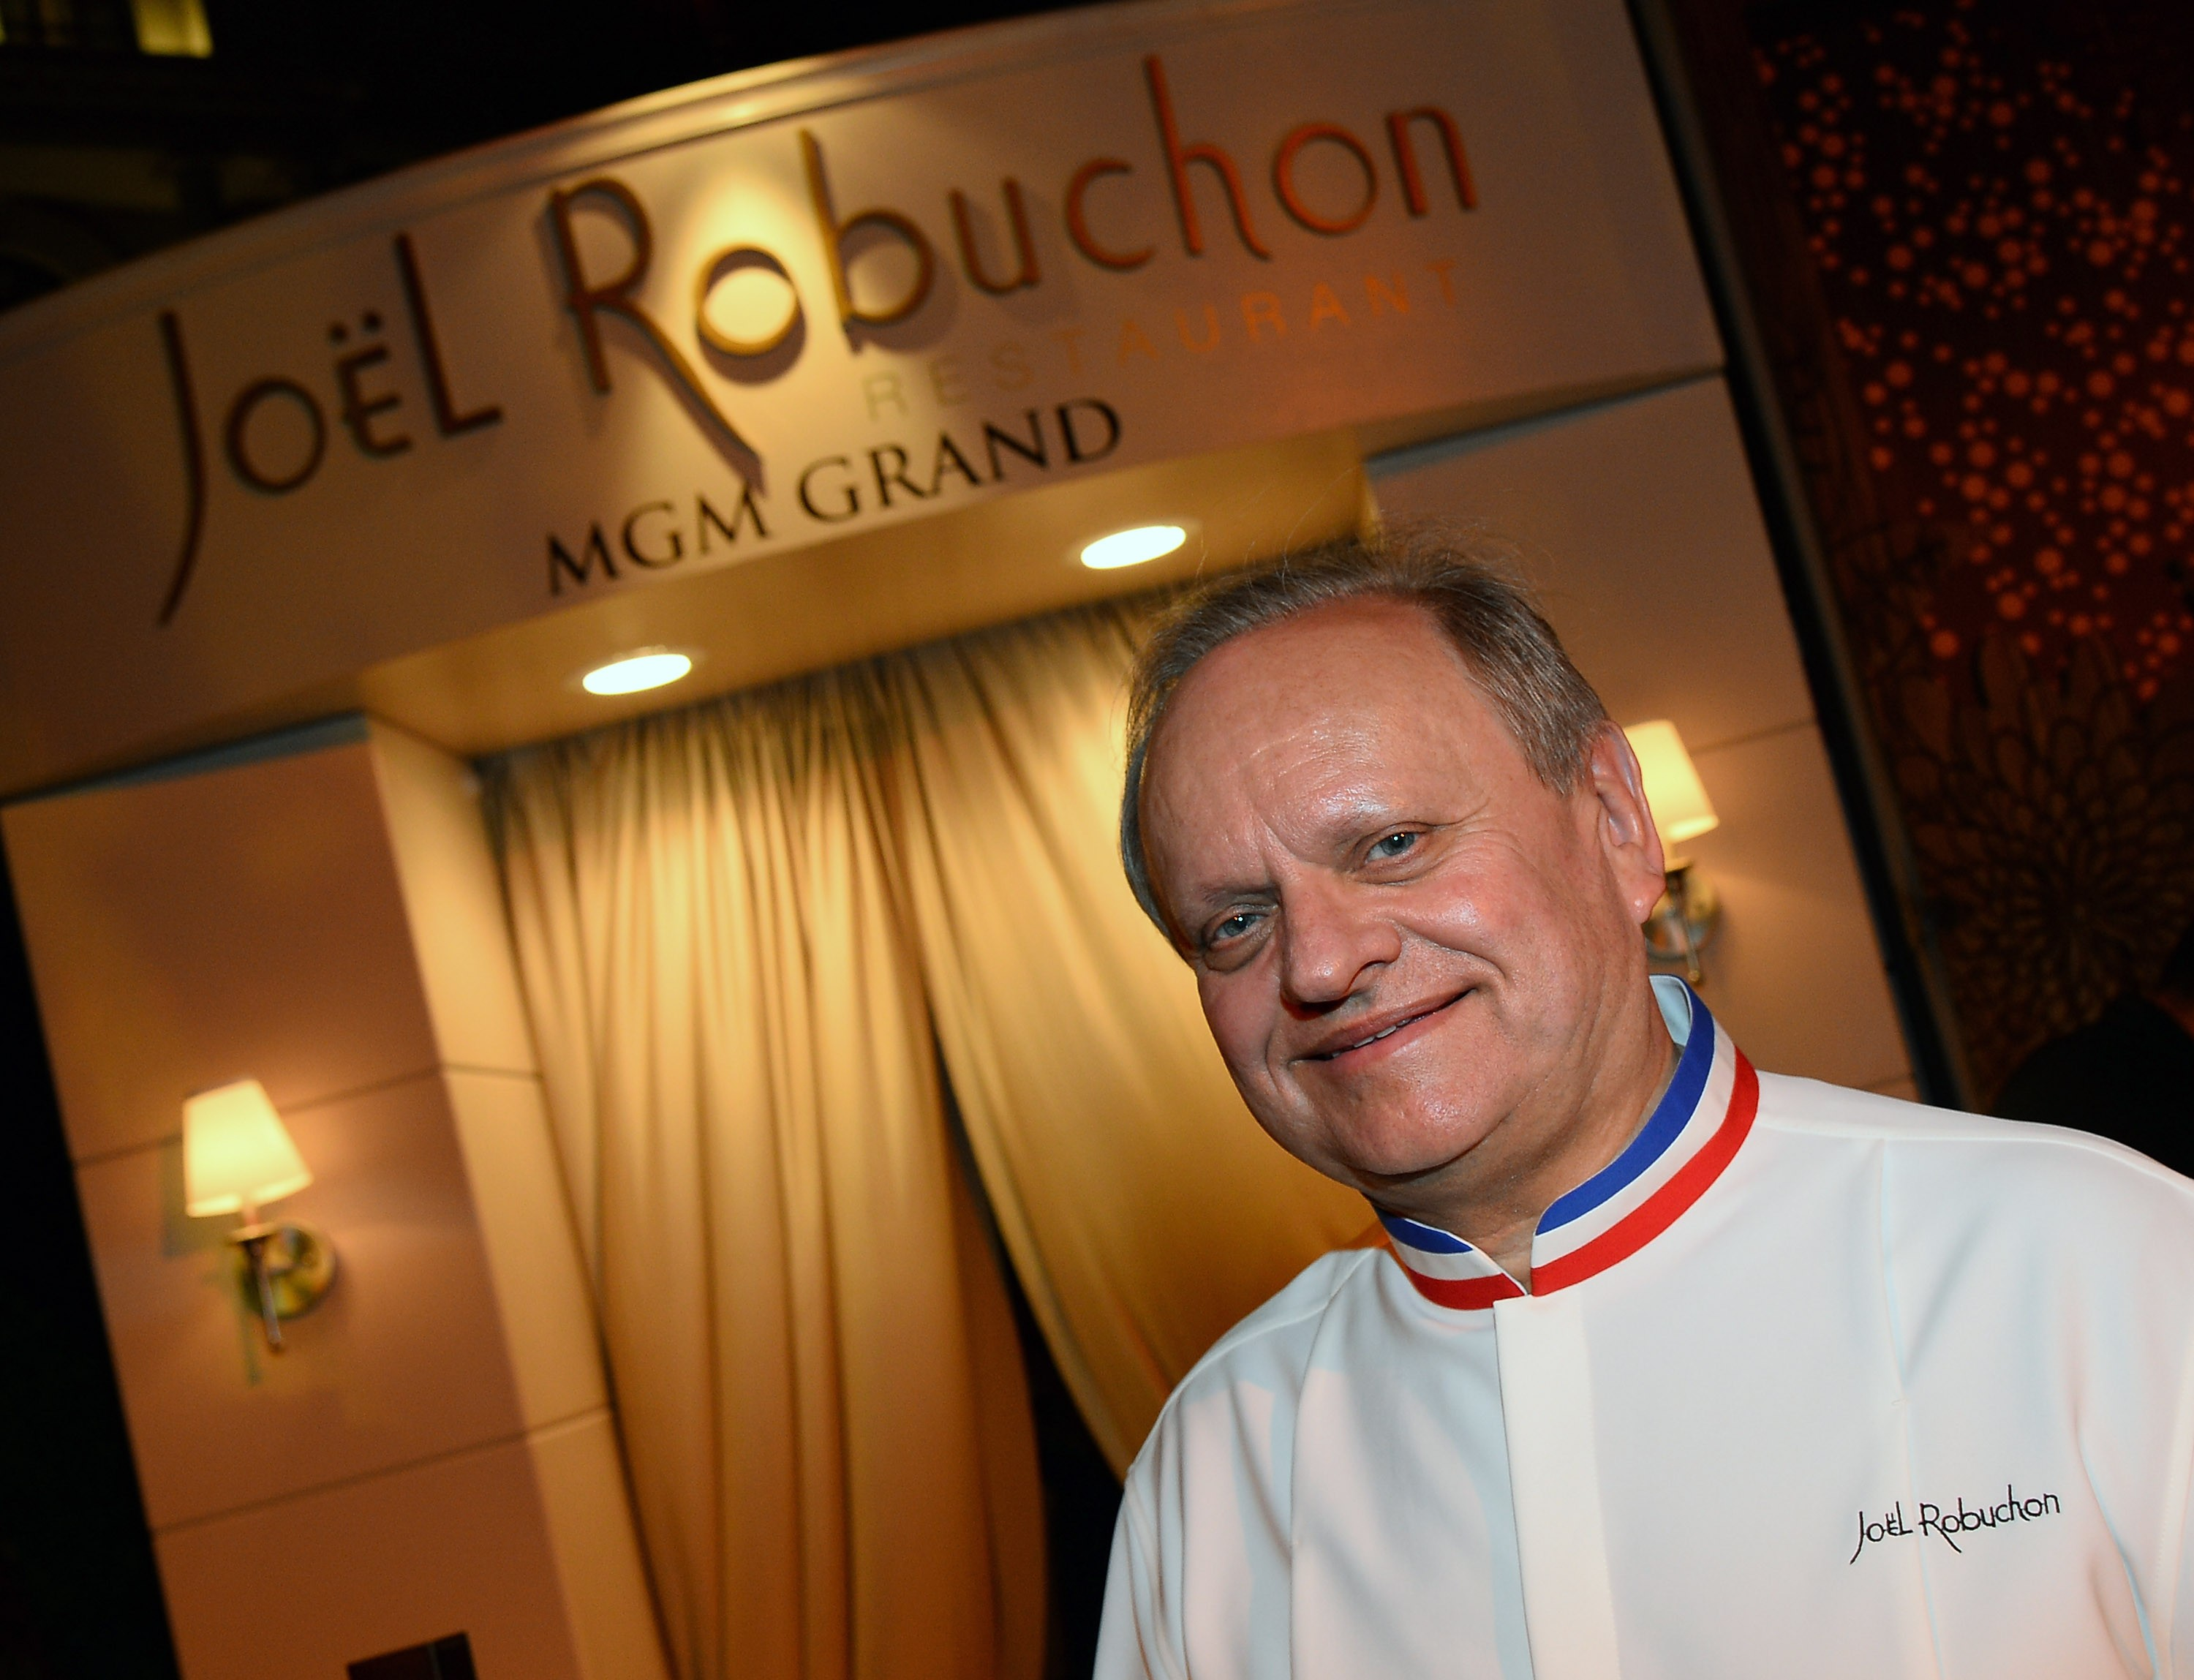 O chef francês Joël Robuchon  (Foto: Getty Images/ Ethan Miller)